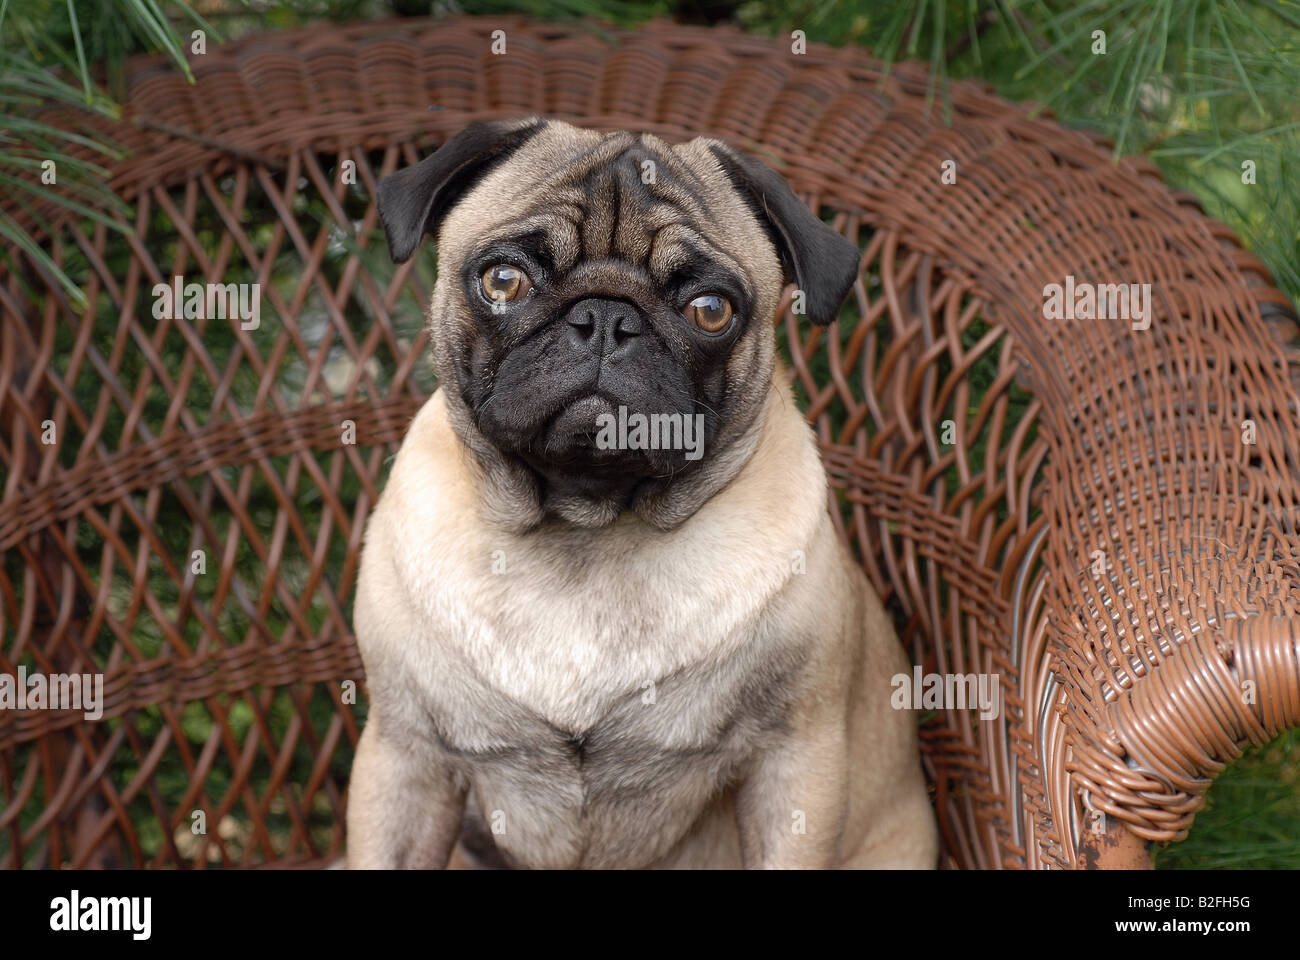 Pug Dog in Wicker chair - Stock Image